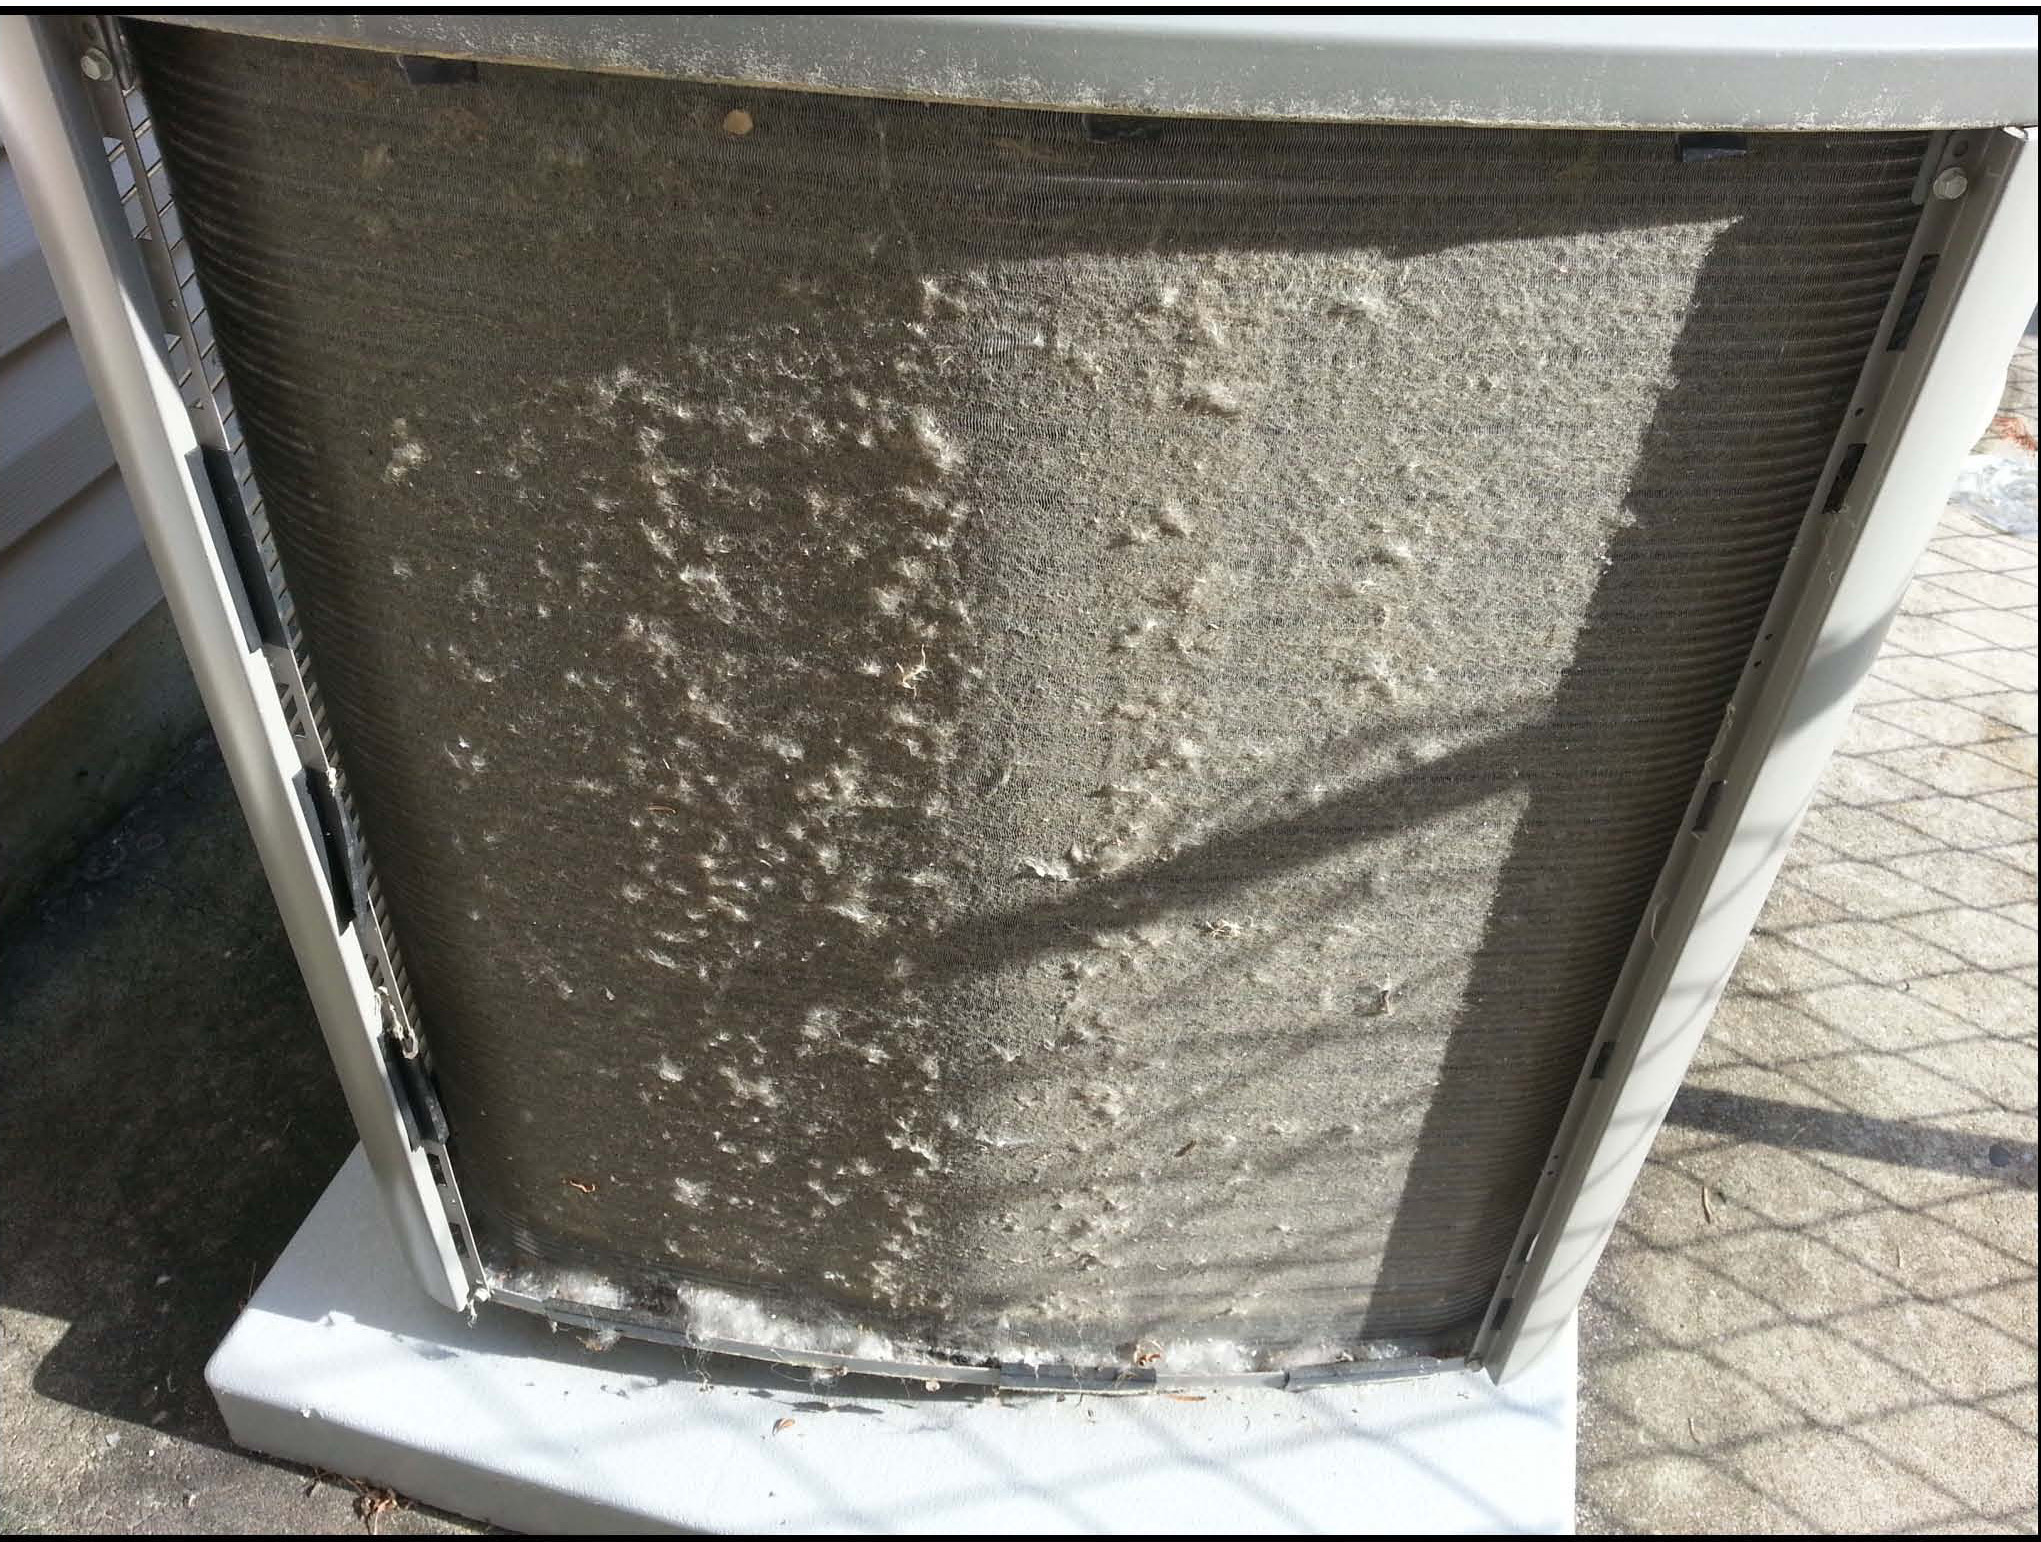 Outdoor Condensing Units Get Clogged with Debris